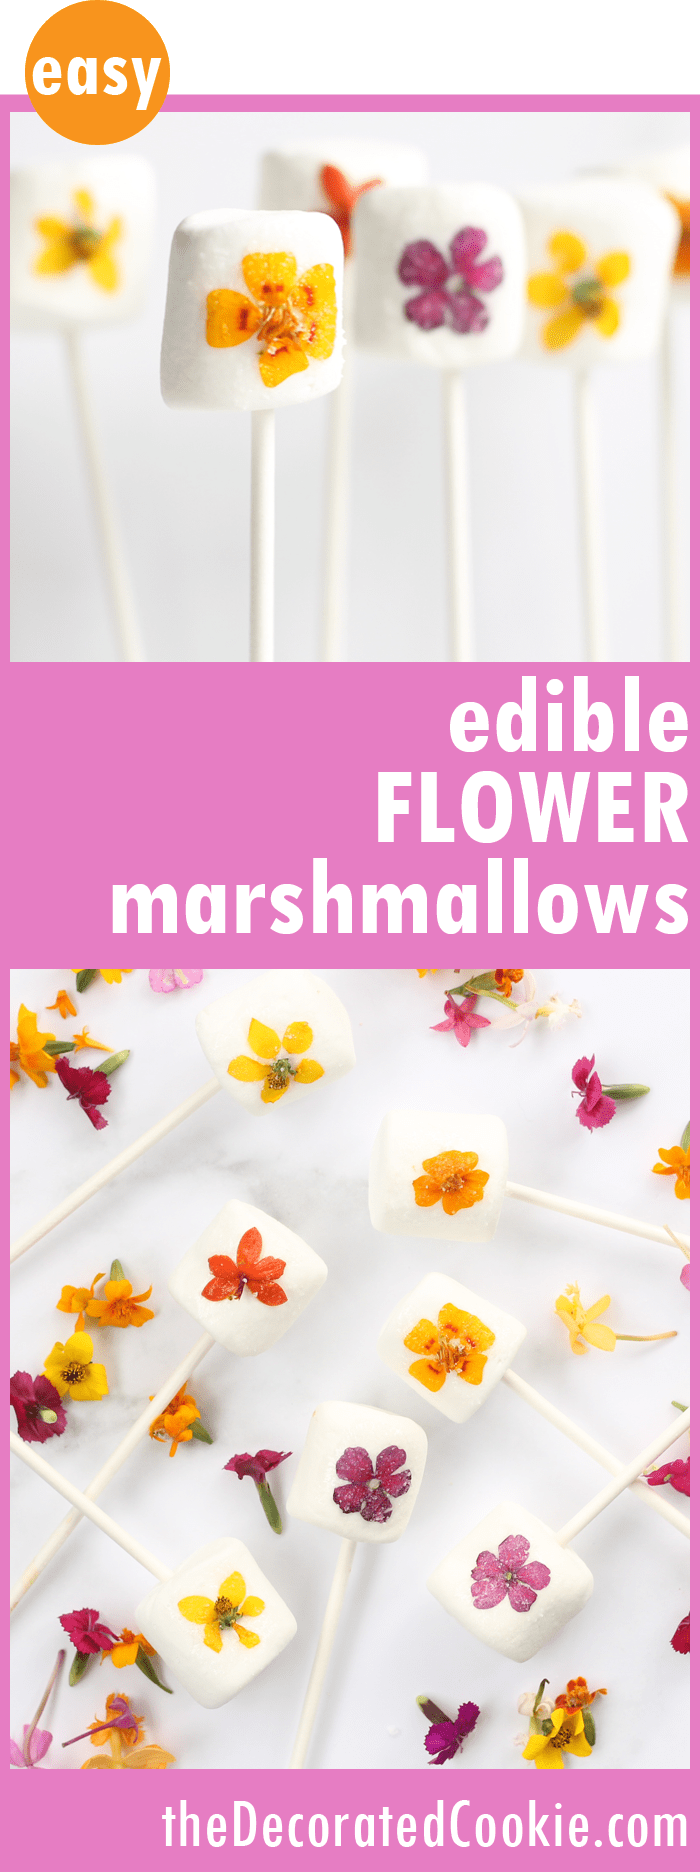 Edible flower marshmallow pops are a beautiful, easy treat to make for Spring, Easter, Mother's Day or any day.